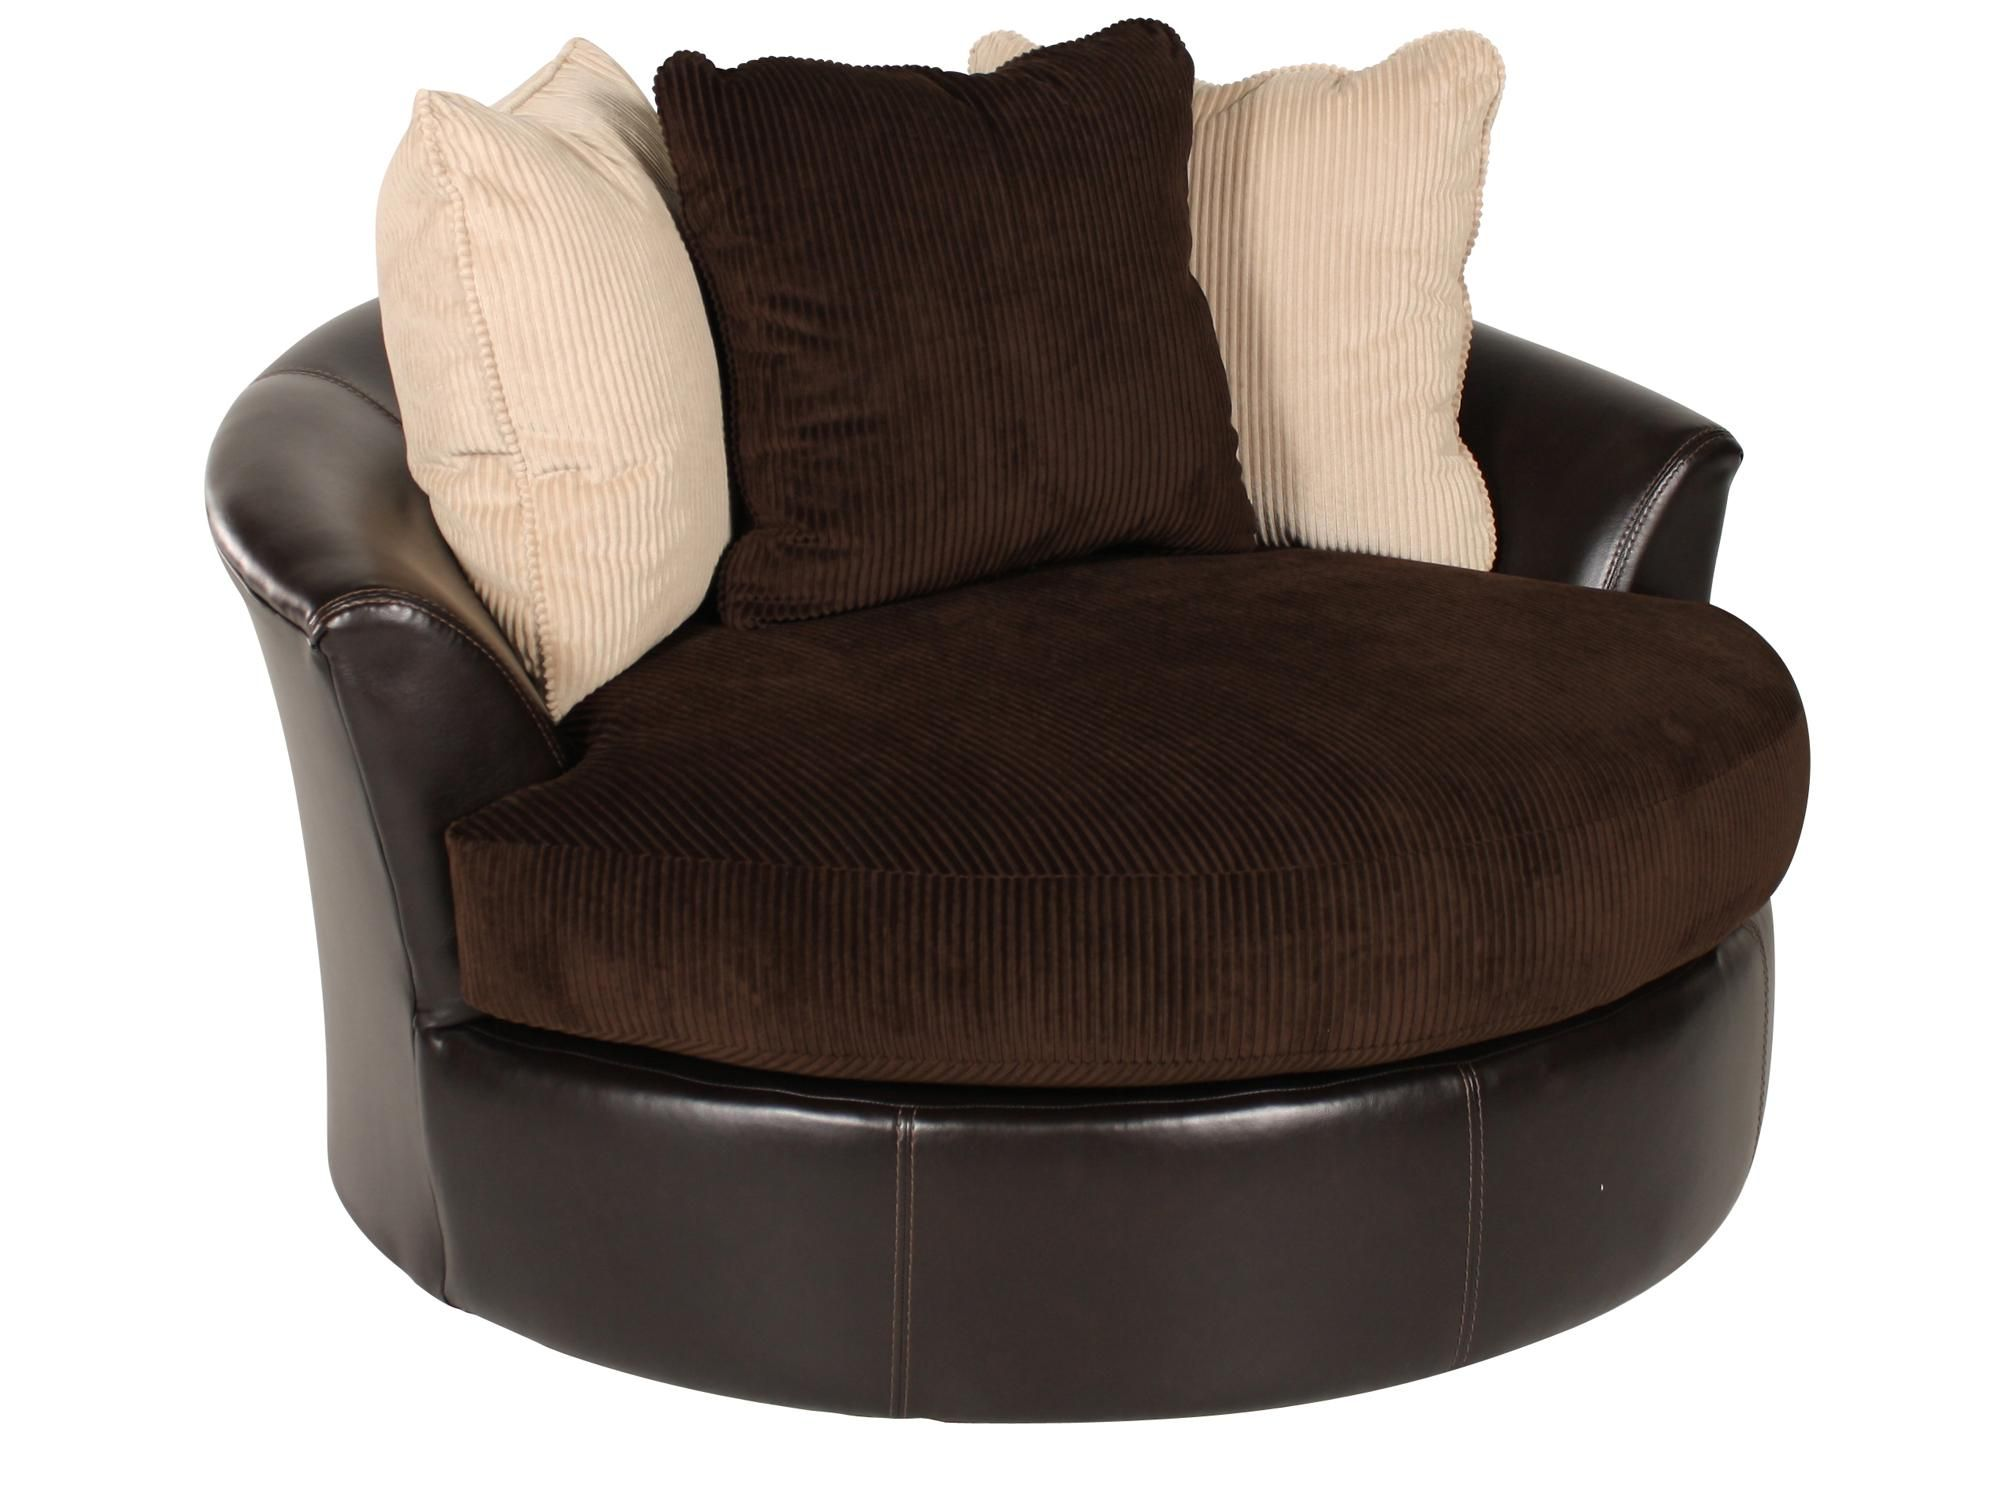 Runder Stuhl Ashley Viva Chocolate Swivel Chair For The Home Rundes Sofa